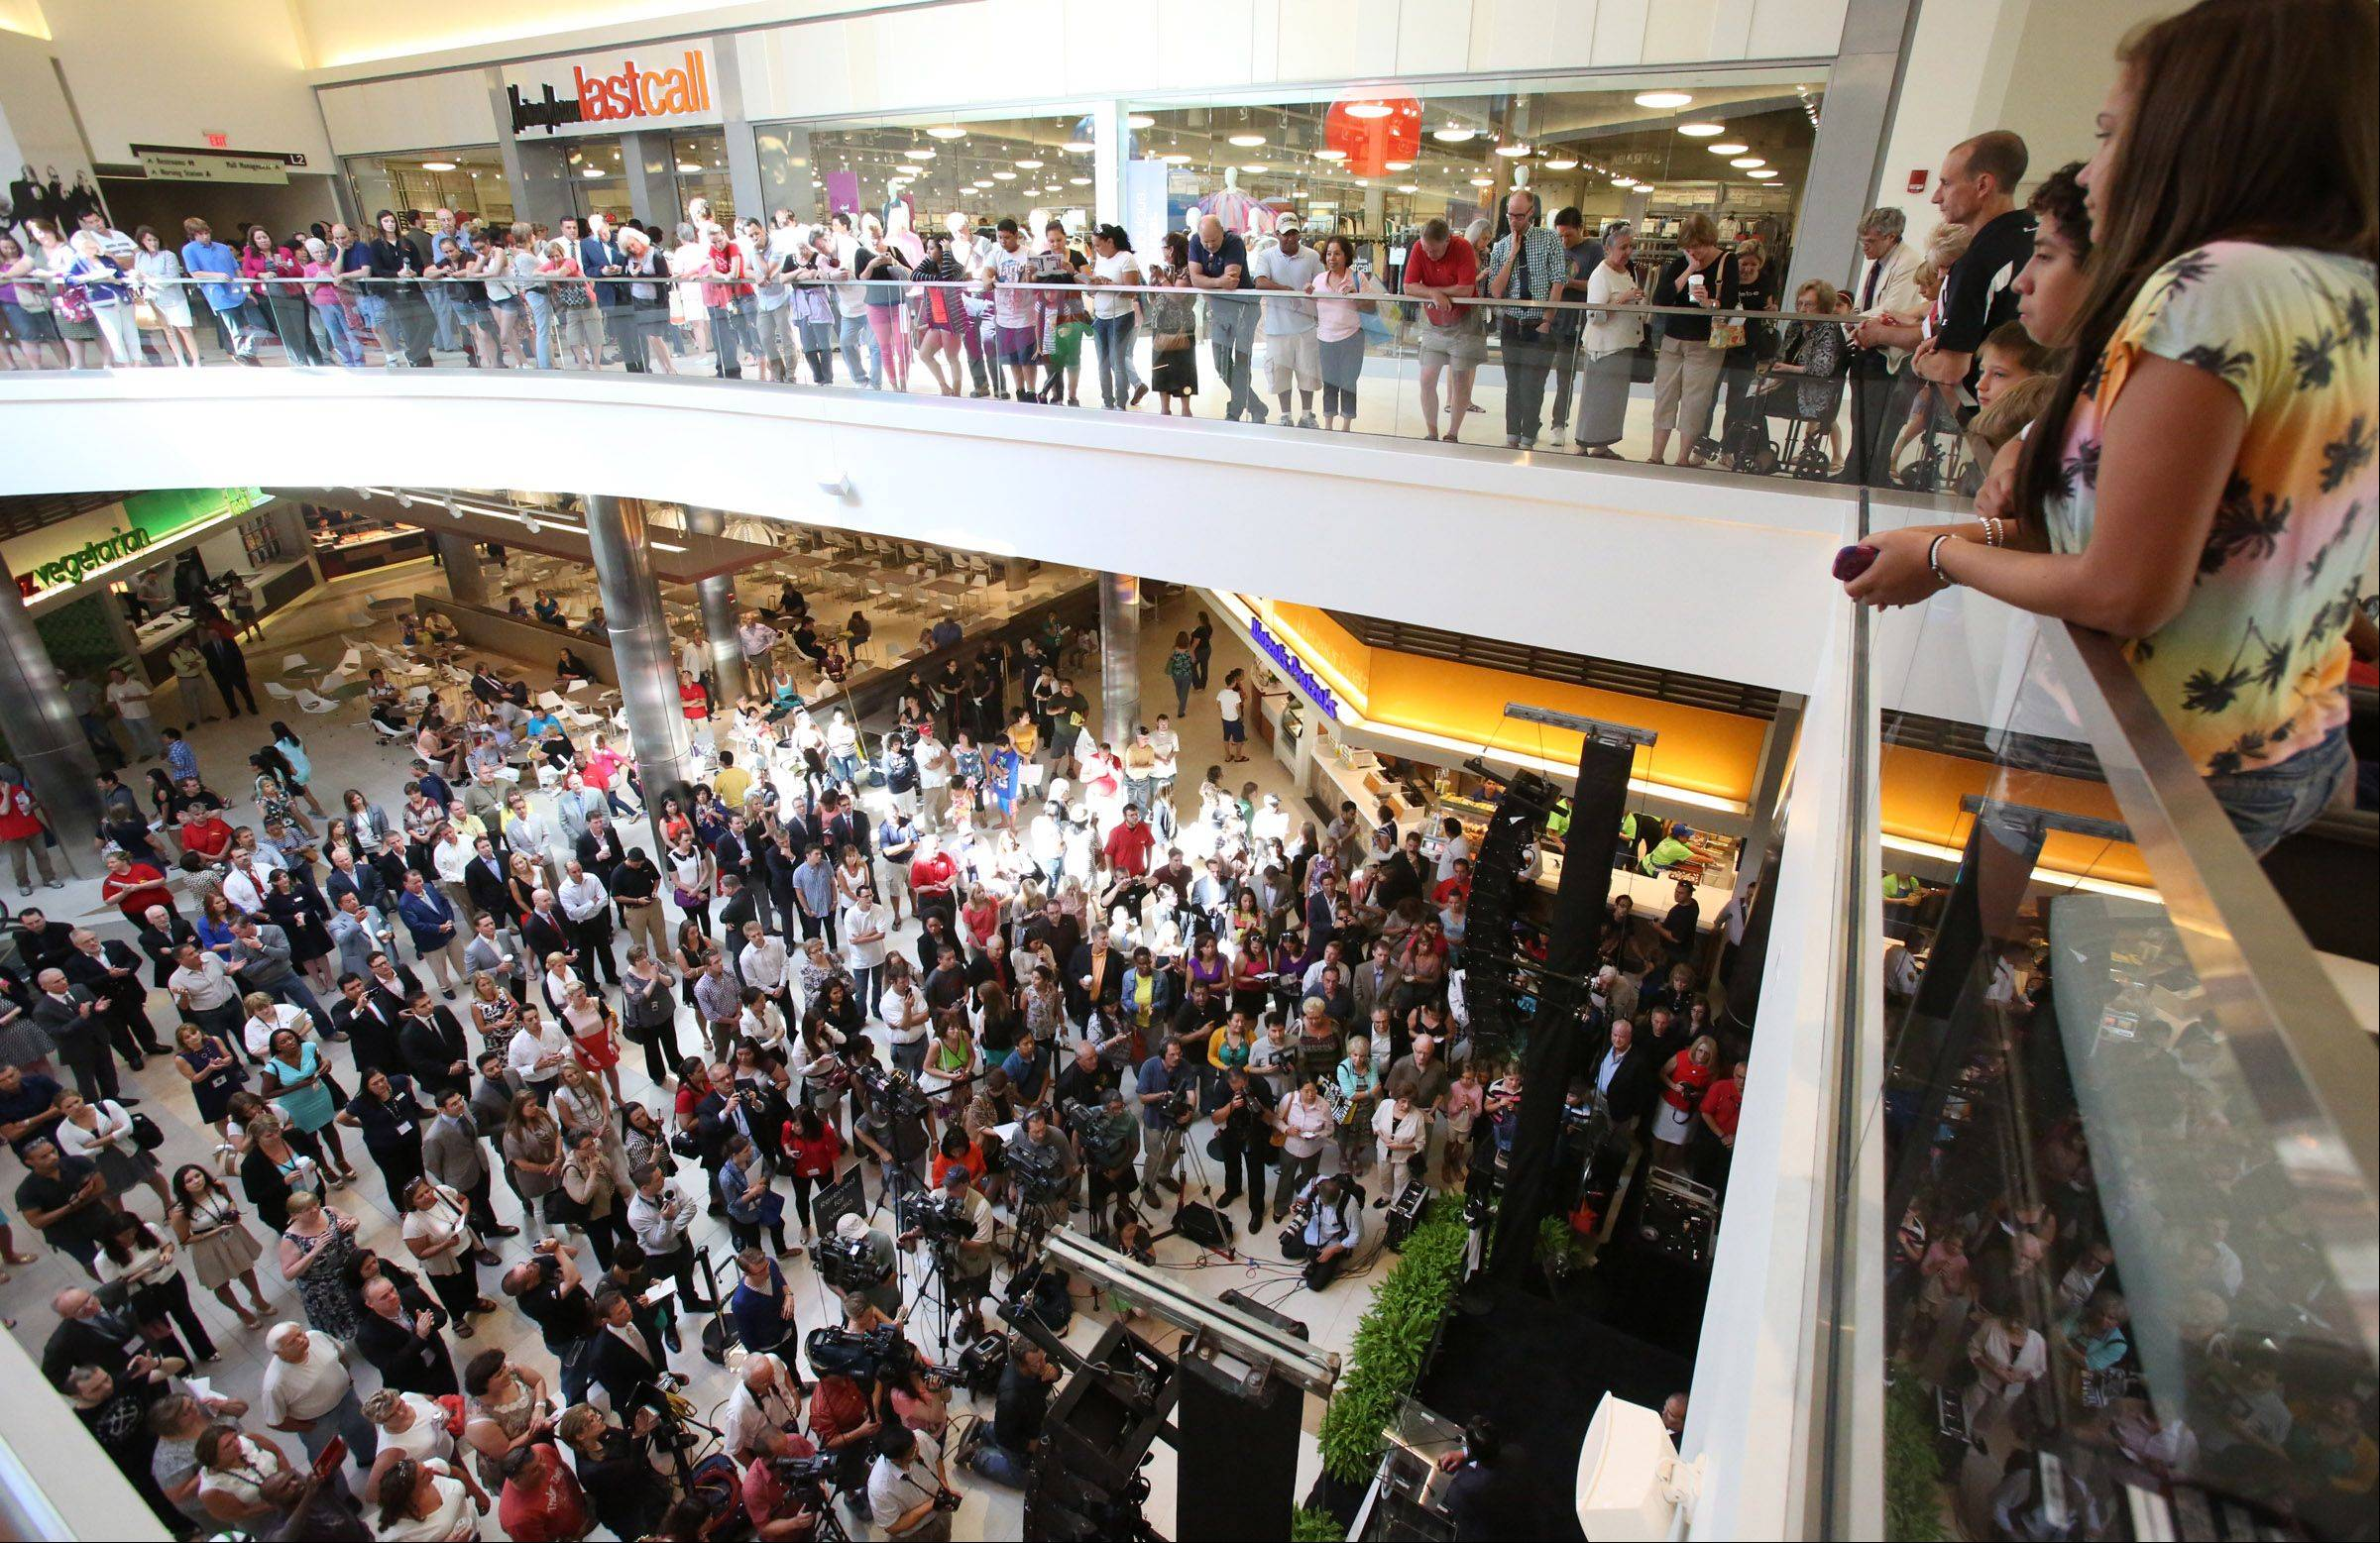 Hundreds of shoppers converge on Rosemont's new upscale Fashion Outlets of Chicago on Thursday for the grand opening and ribbon-cutting ceremony in the food court area on the first level.